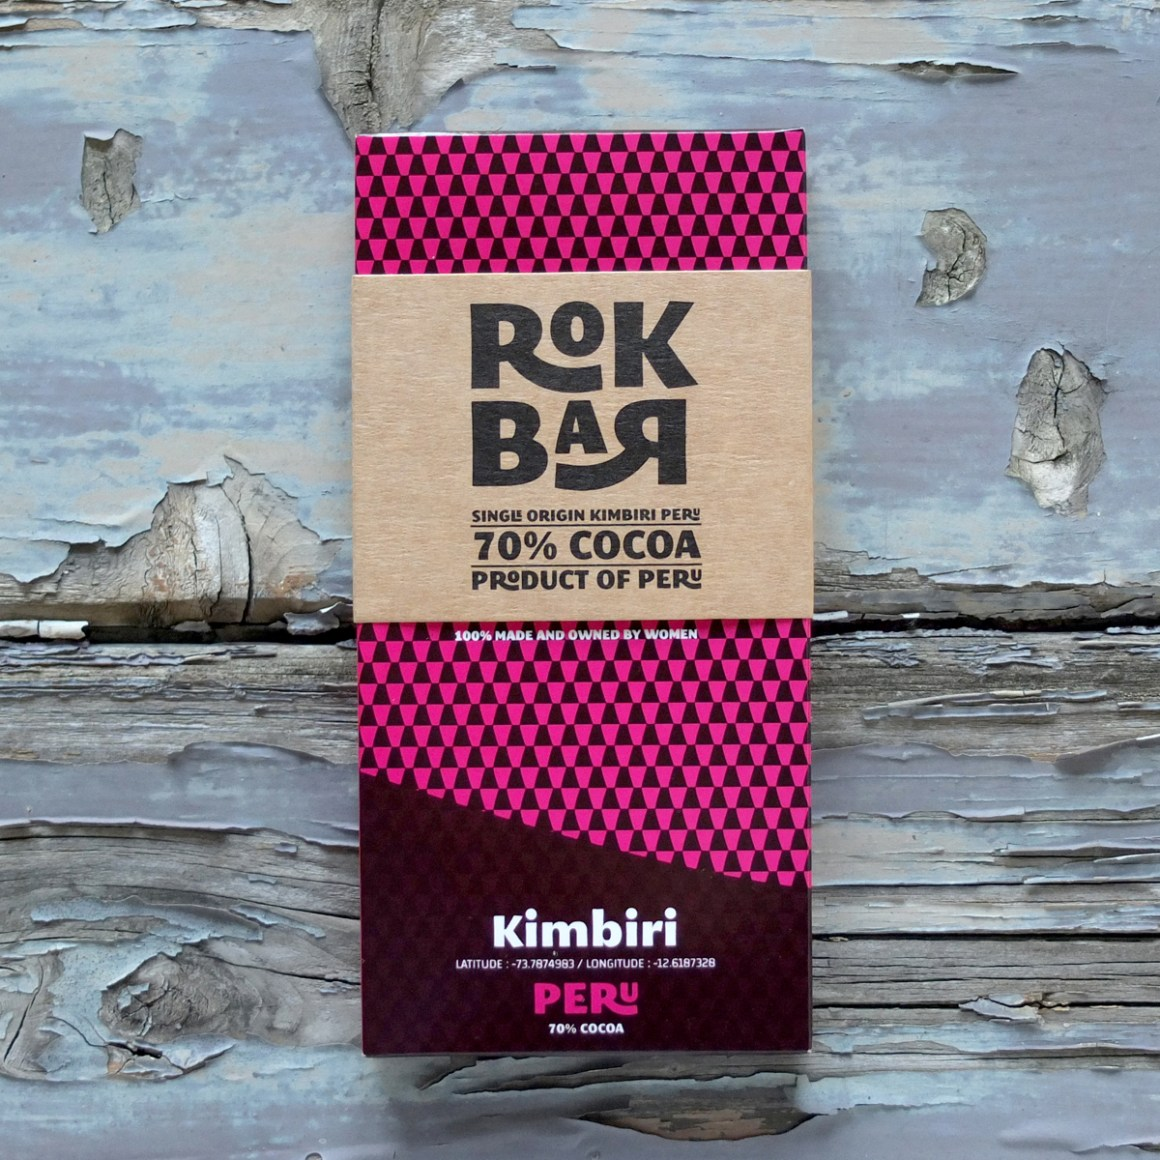 Rokbar 100% made and owned by women